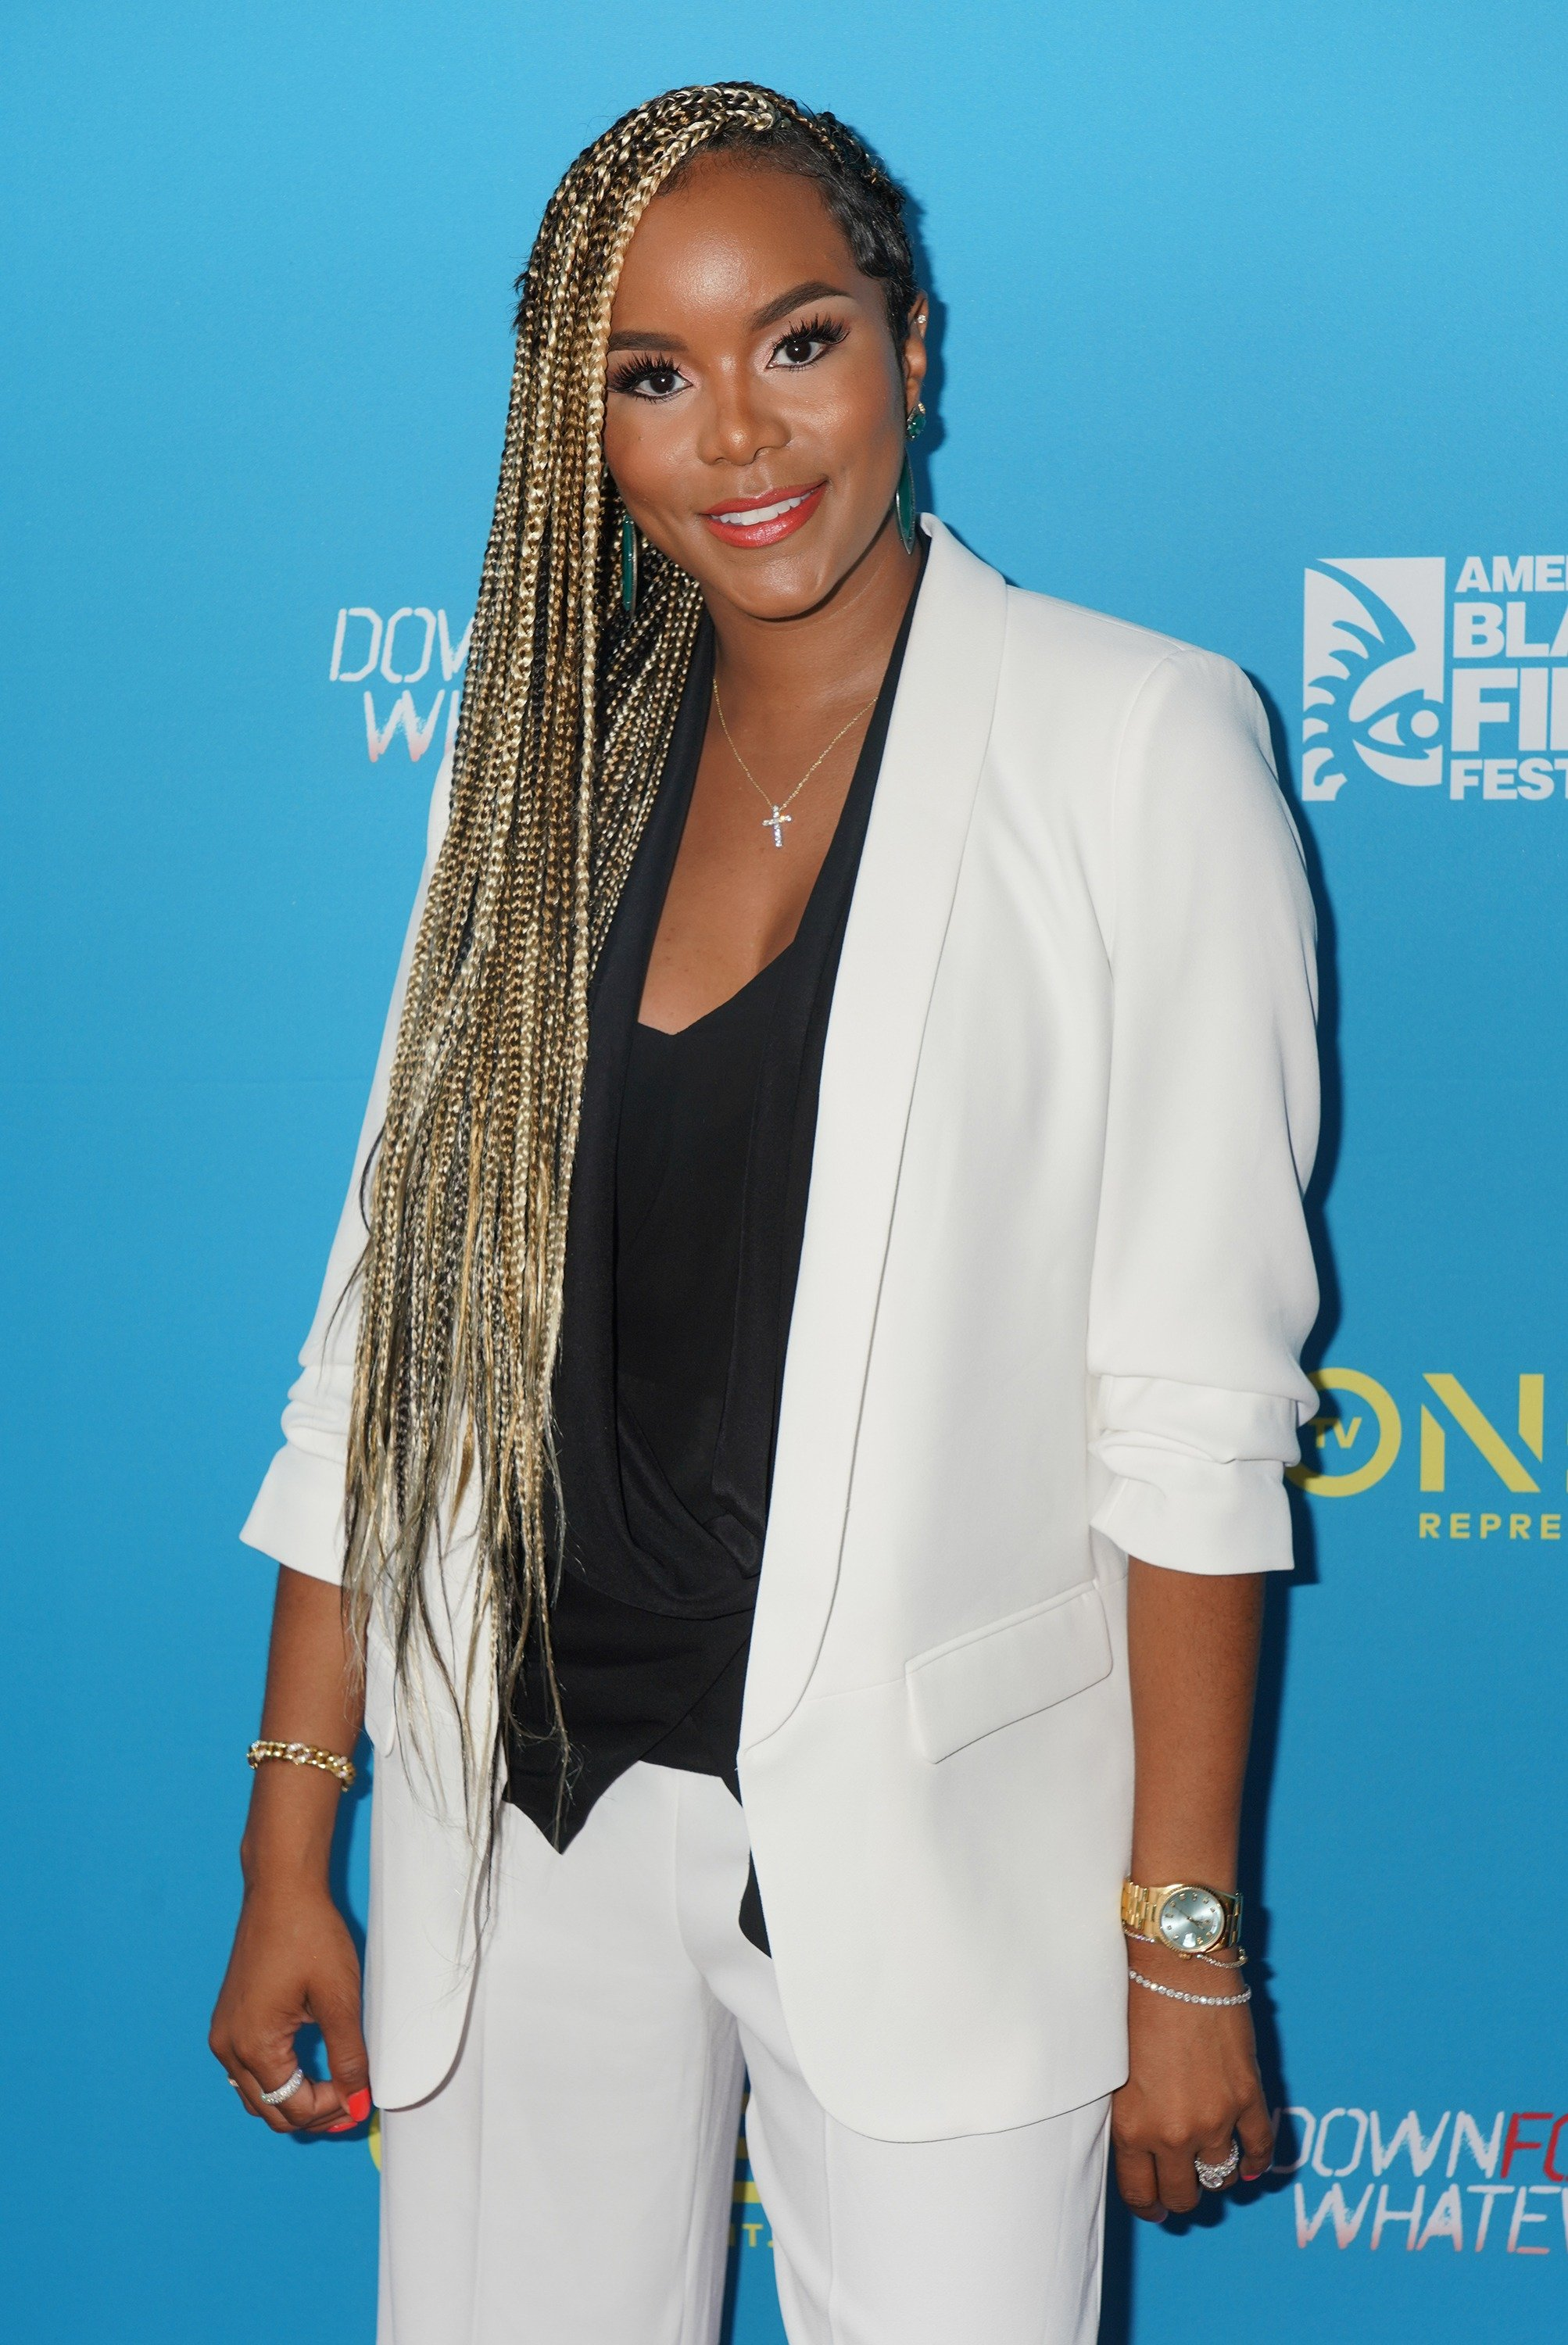 """LeToya Luckett attends the premiere of TV One's """"Down For Whatever"""" at the American Black Film Festival on June 14, 2018 in Miami Beach, Florida 